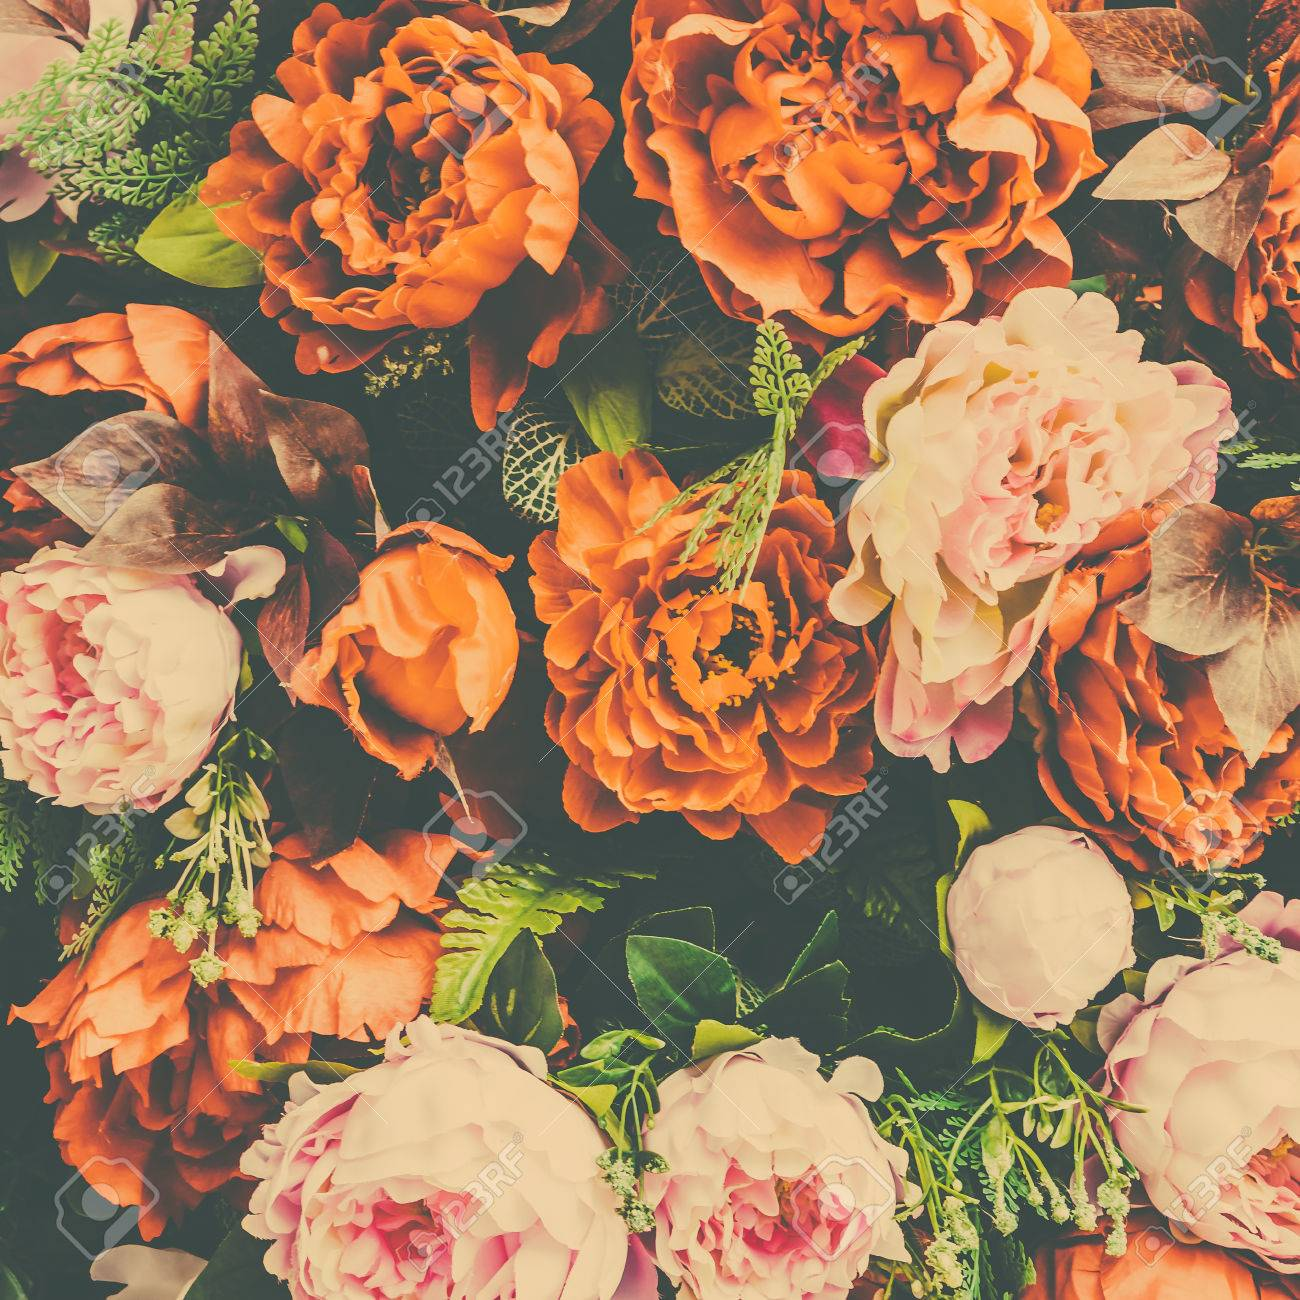 Beautiful Vintage Flower Background Vintage Filter Effect Stock Photo Picture And Royalty Free Image Image 41949702